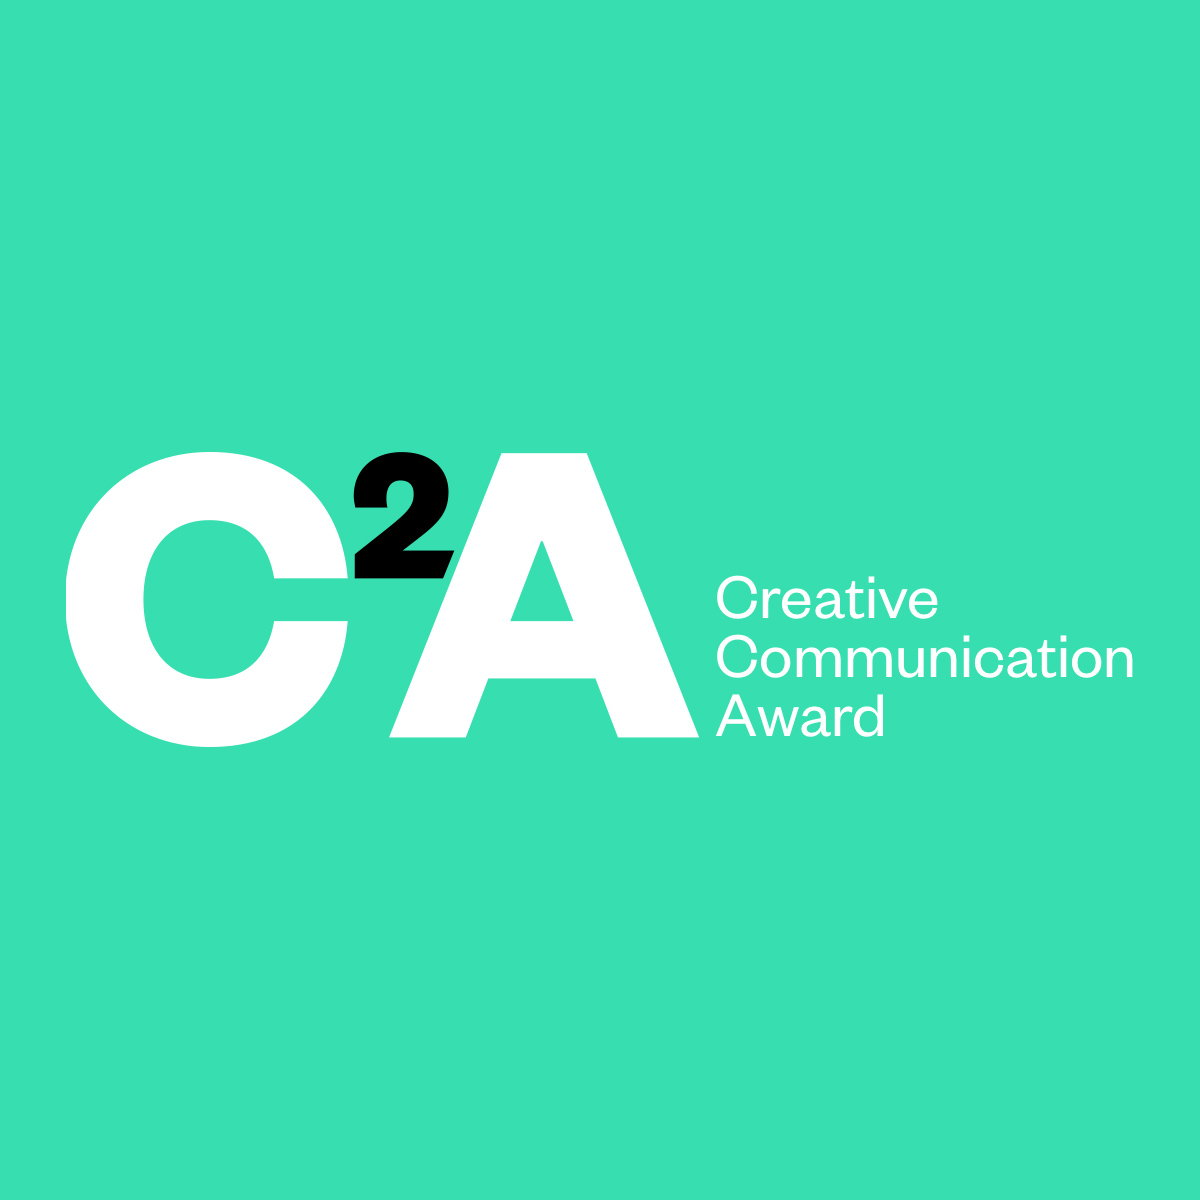 Creative Communication Award 2020